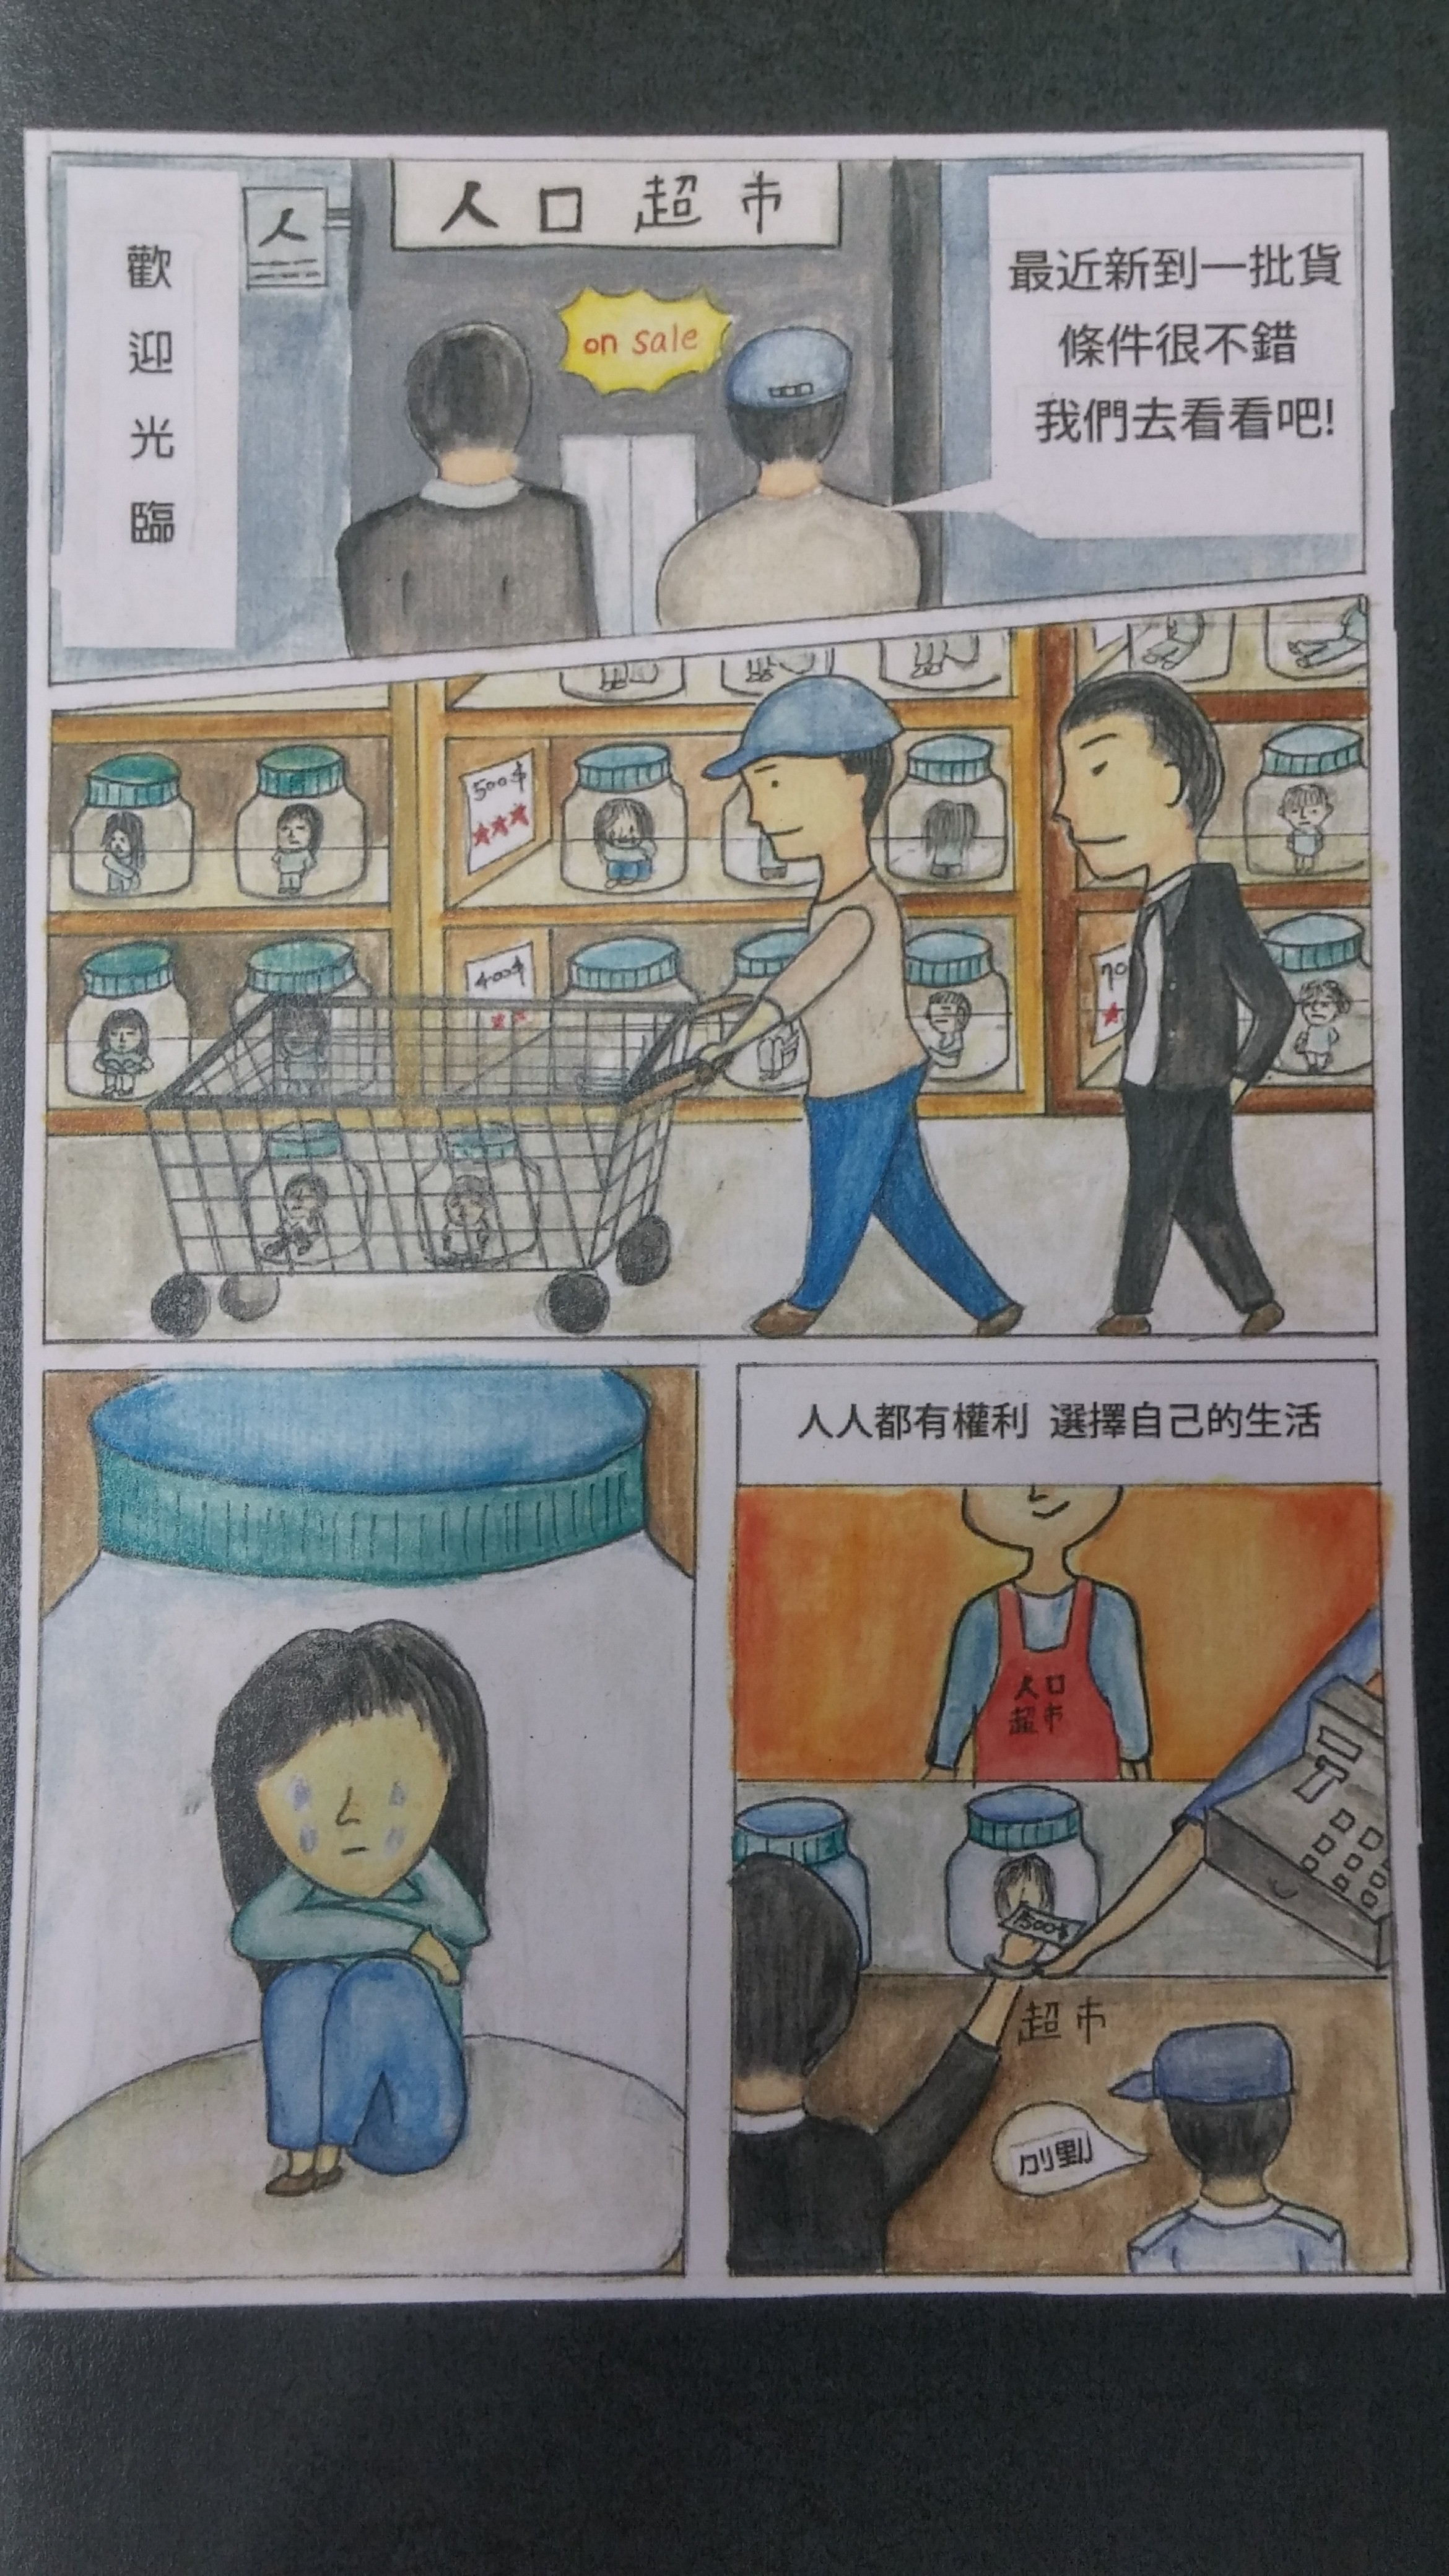 A Thai worker jailed in Taiwan has won a prize in a cartoon competition organized by the National Immigration Agency.